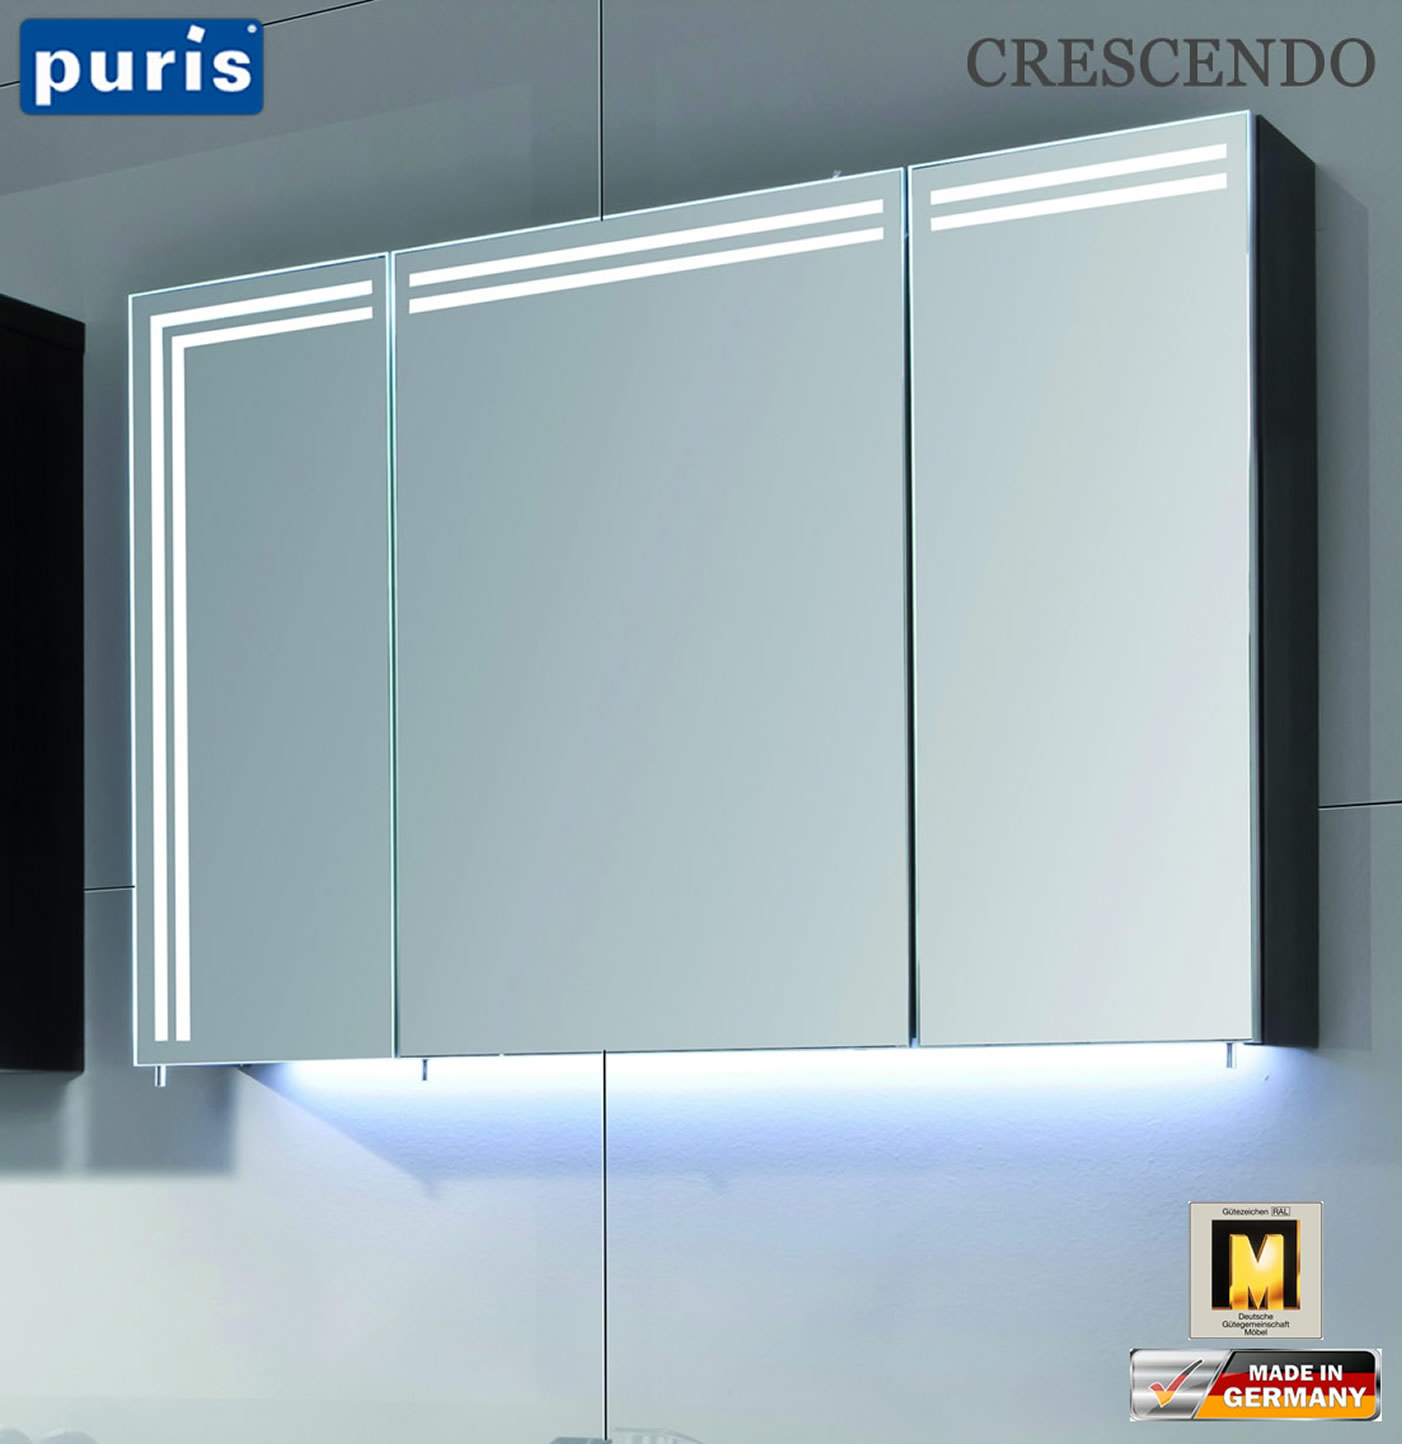 puris crescendo led spiegelschrank 90 cm s2a439r23 impuls home. Black Bedroom Furniture Sets. Home Design Ideas